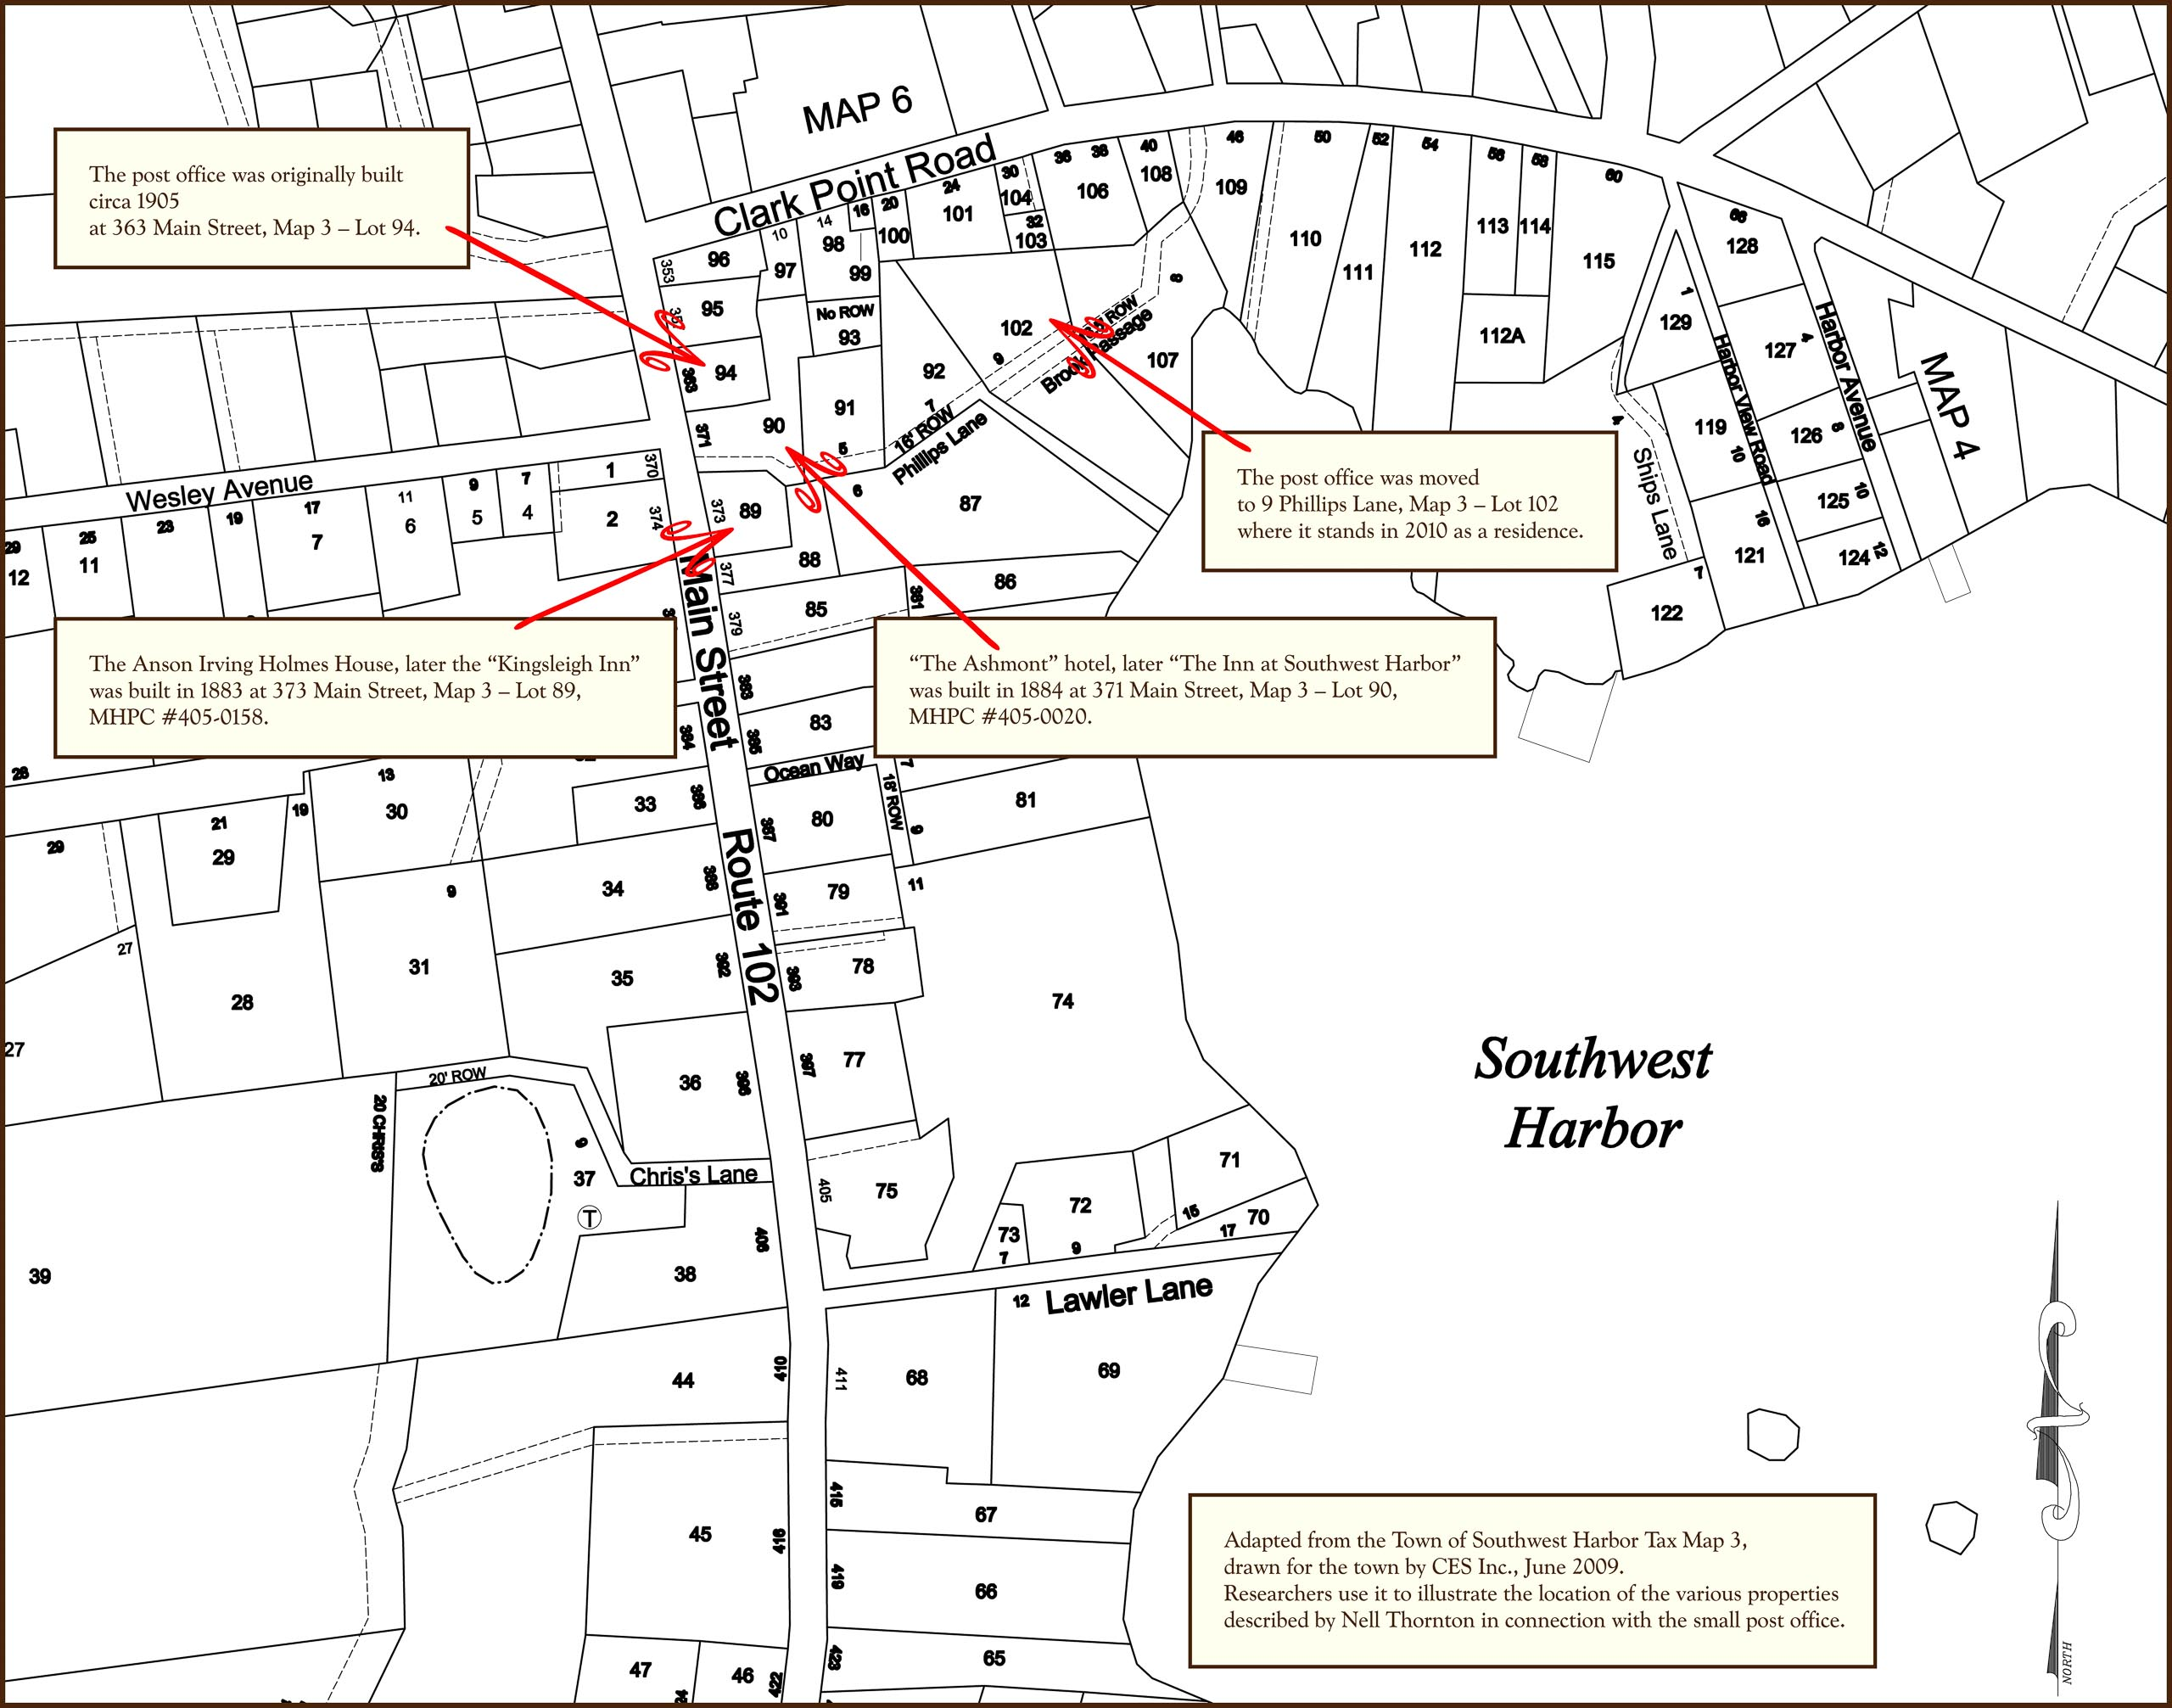 Town of Southwest Harbor - Tax Map 3